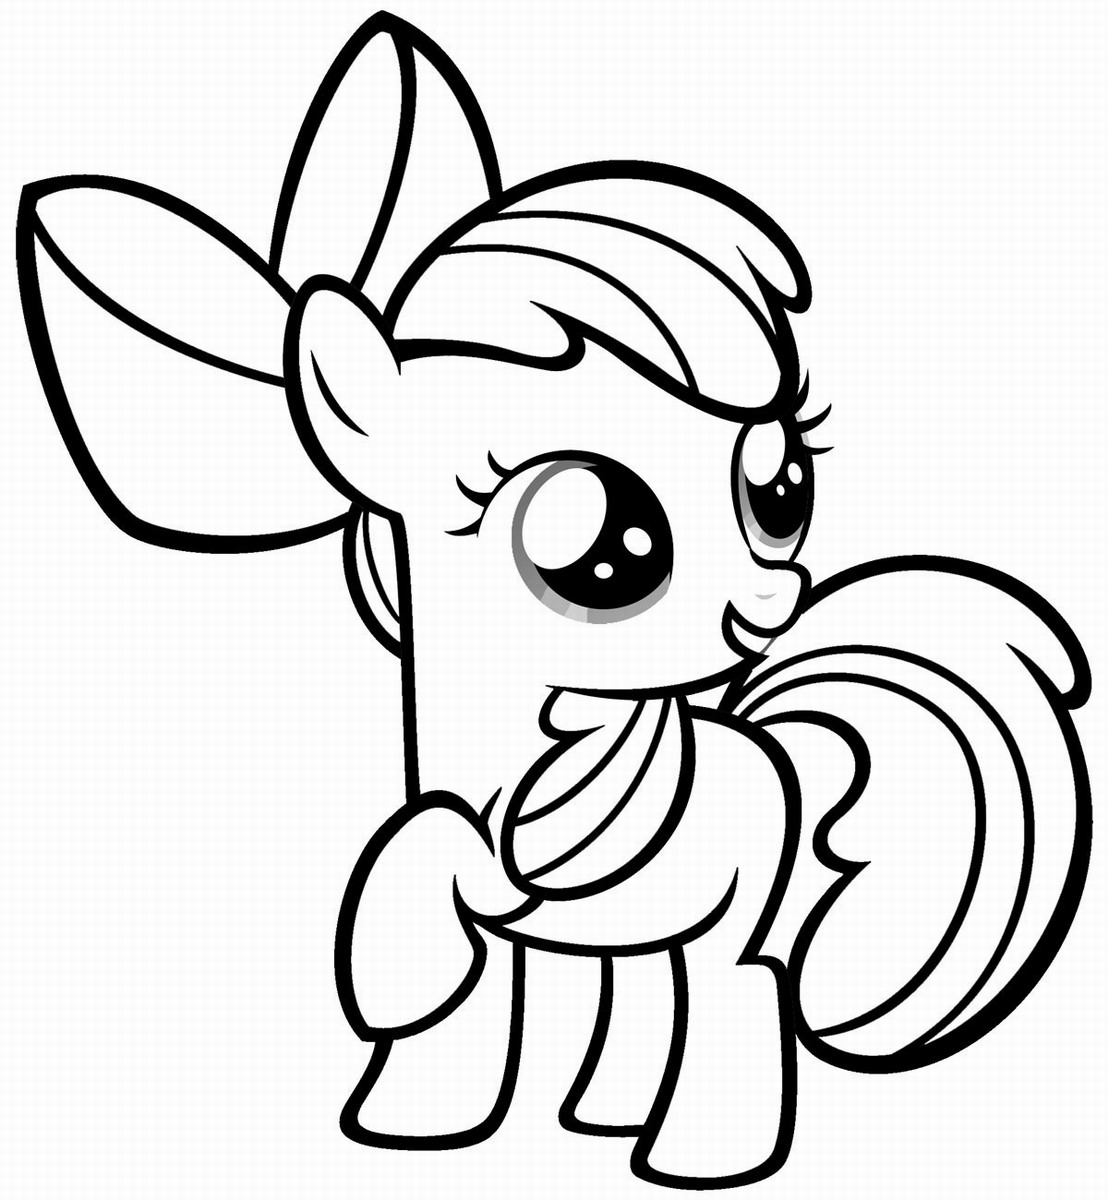 my little ponies coloring pages top printable my little pony coloring pages derrick website my ponies pages little coloring